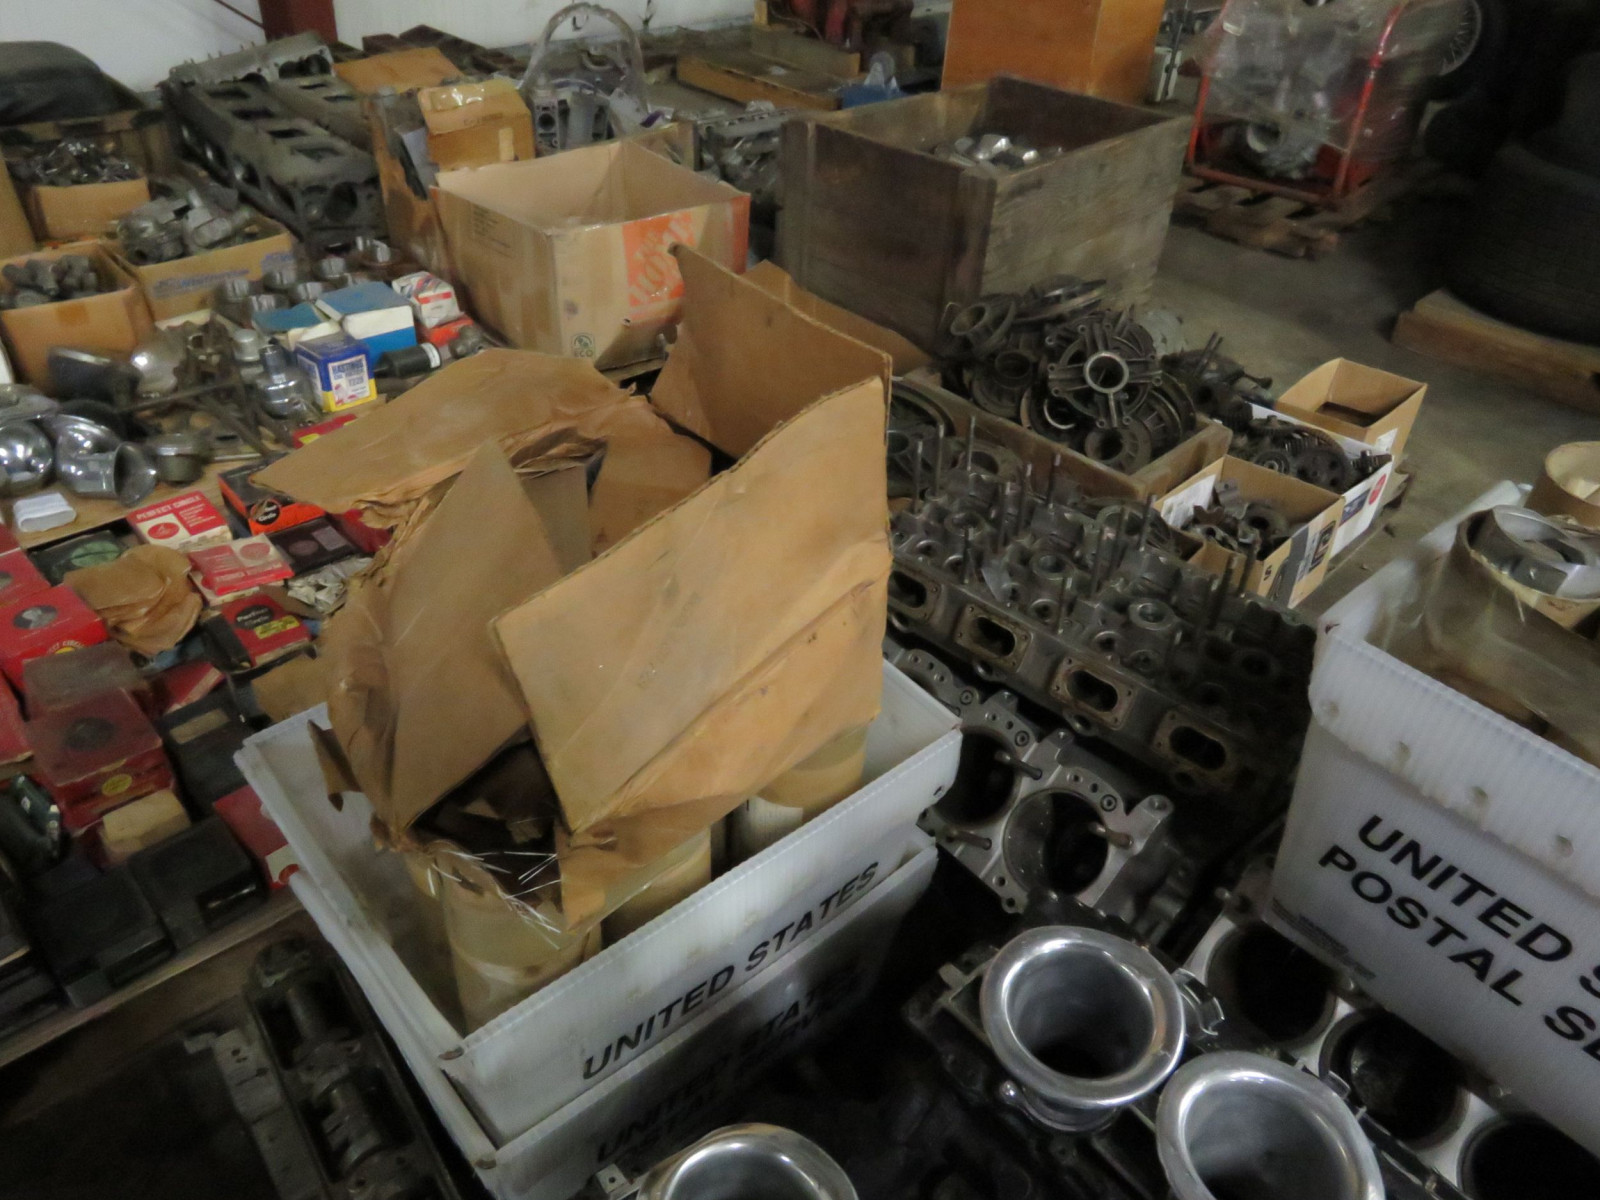 Ford Formula F1 Cosworth Engine with Parts Selling as a Pallet - Image 5